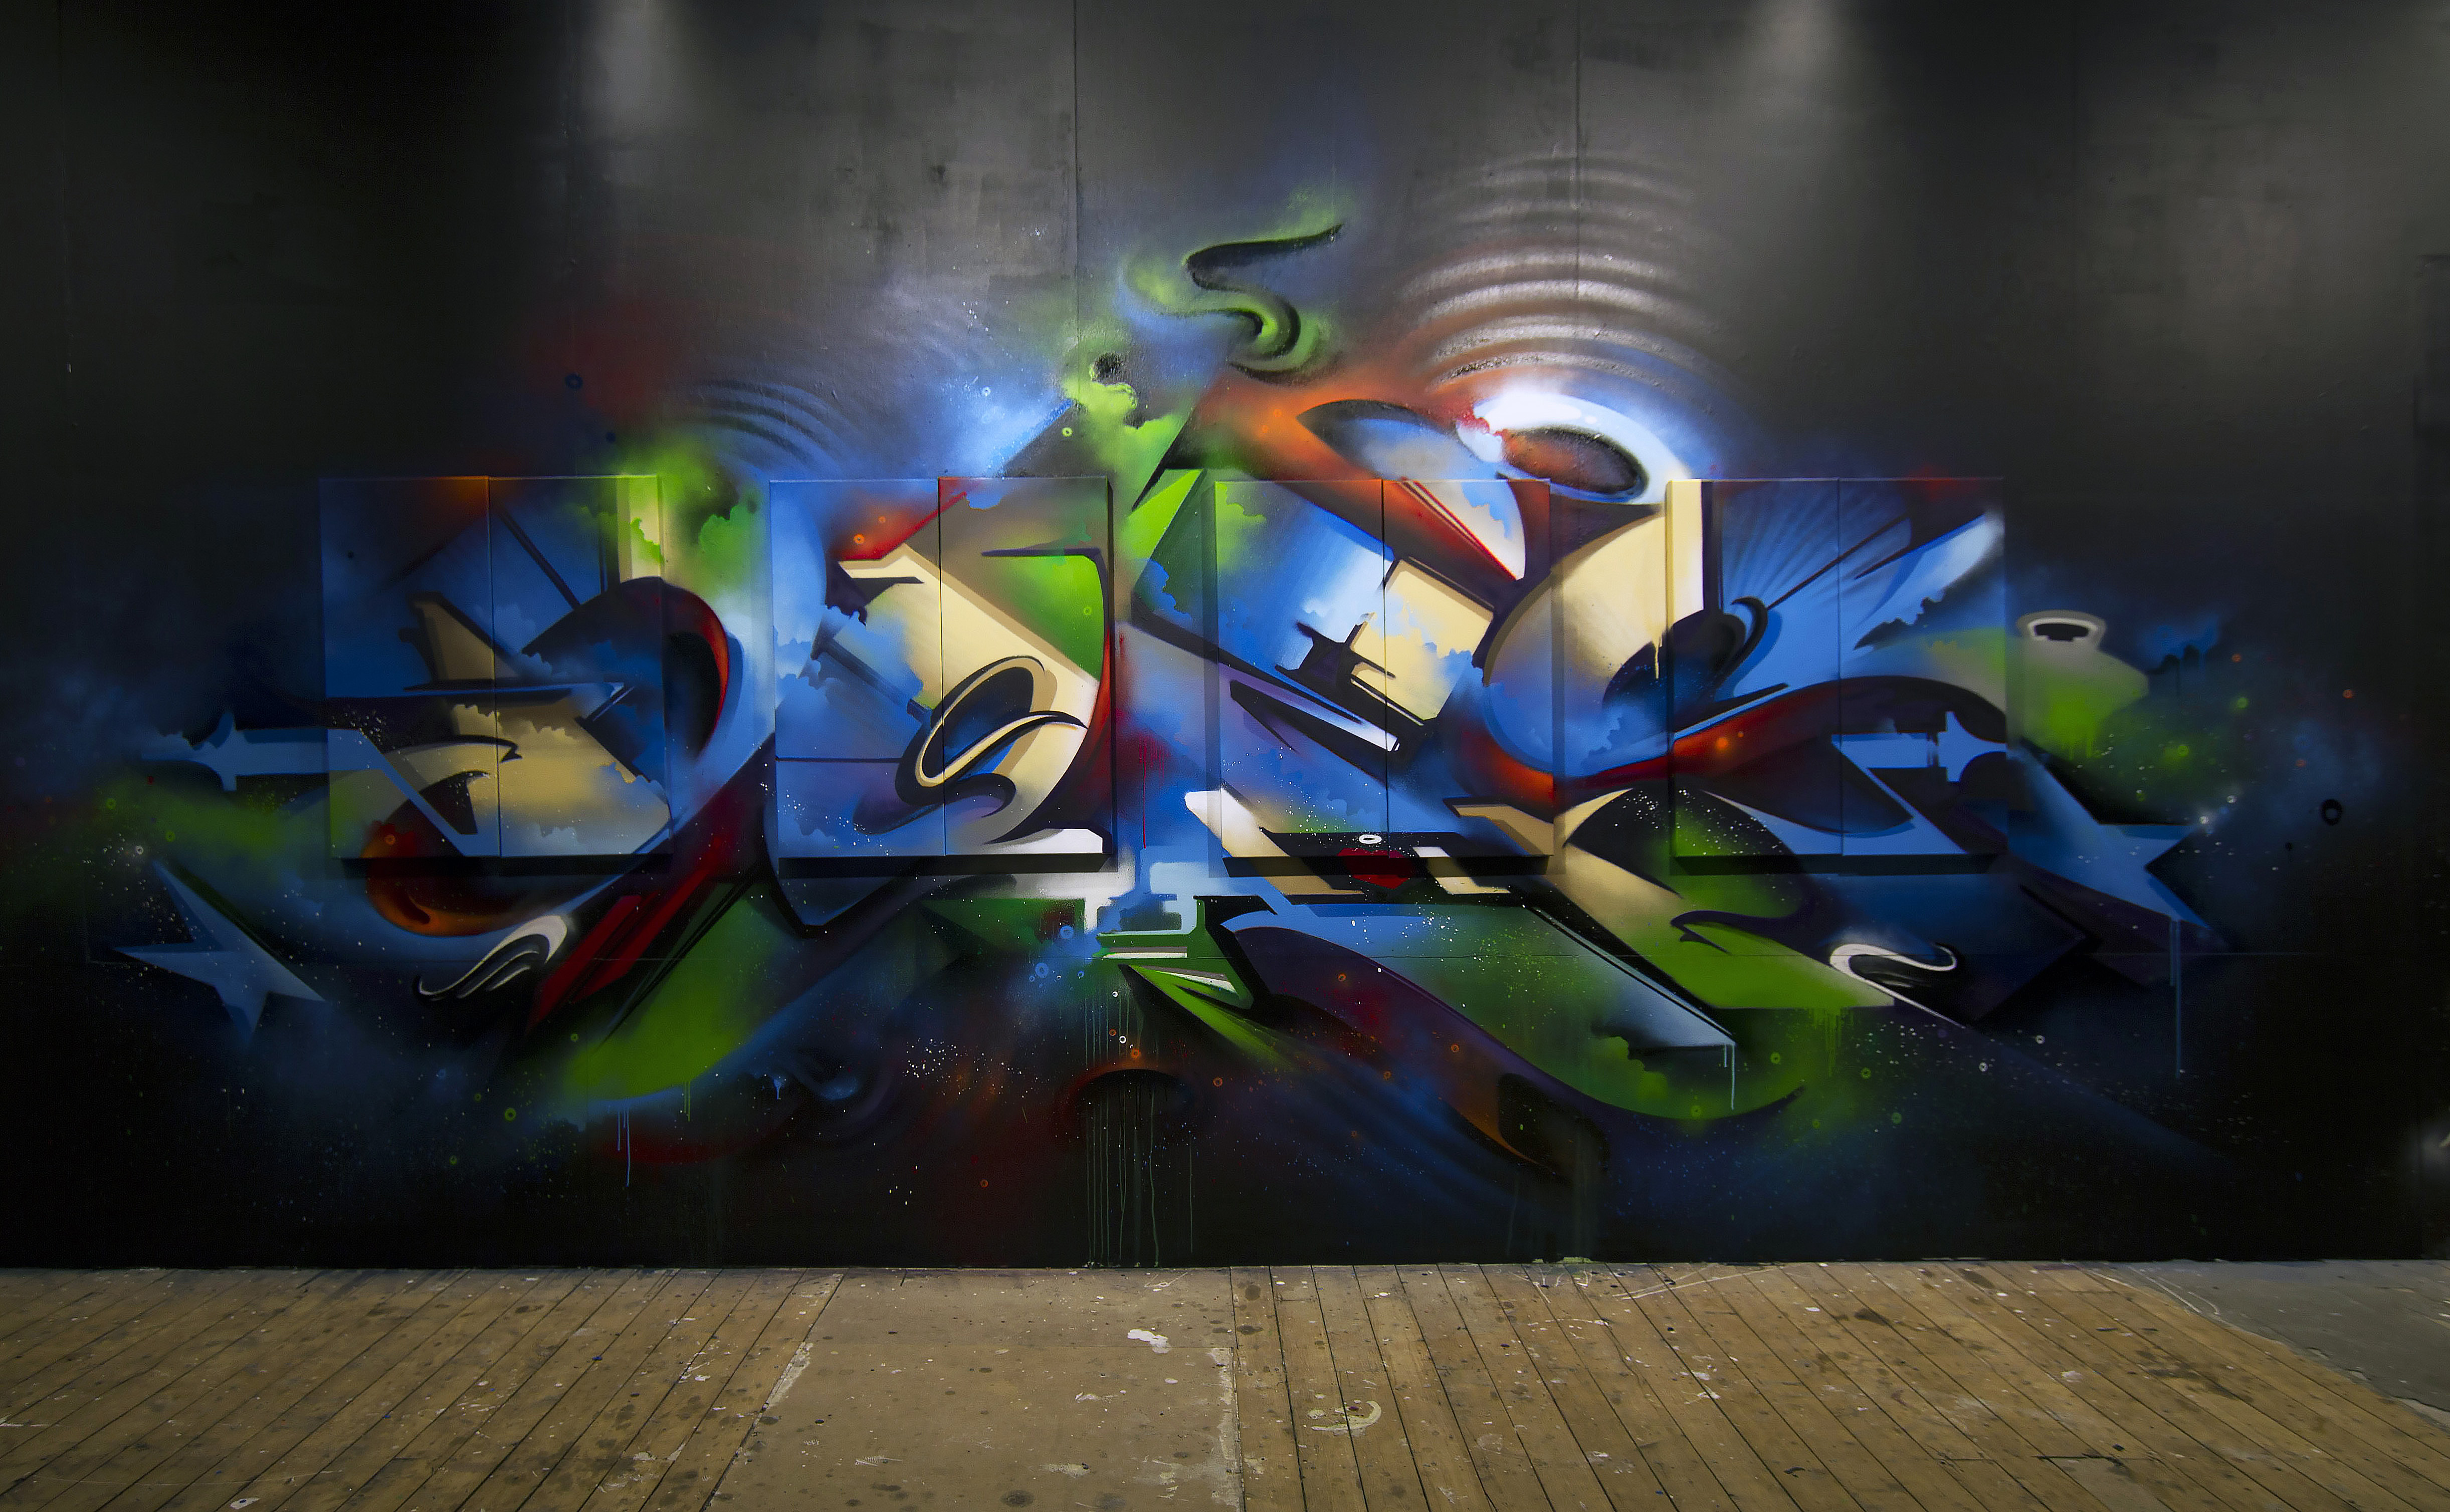 A work by Does - Sydney australia endless perspectives